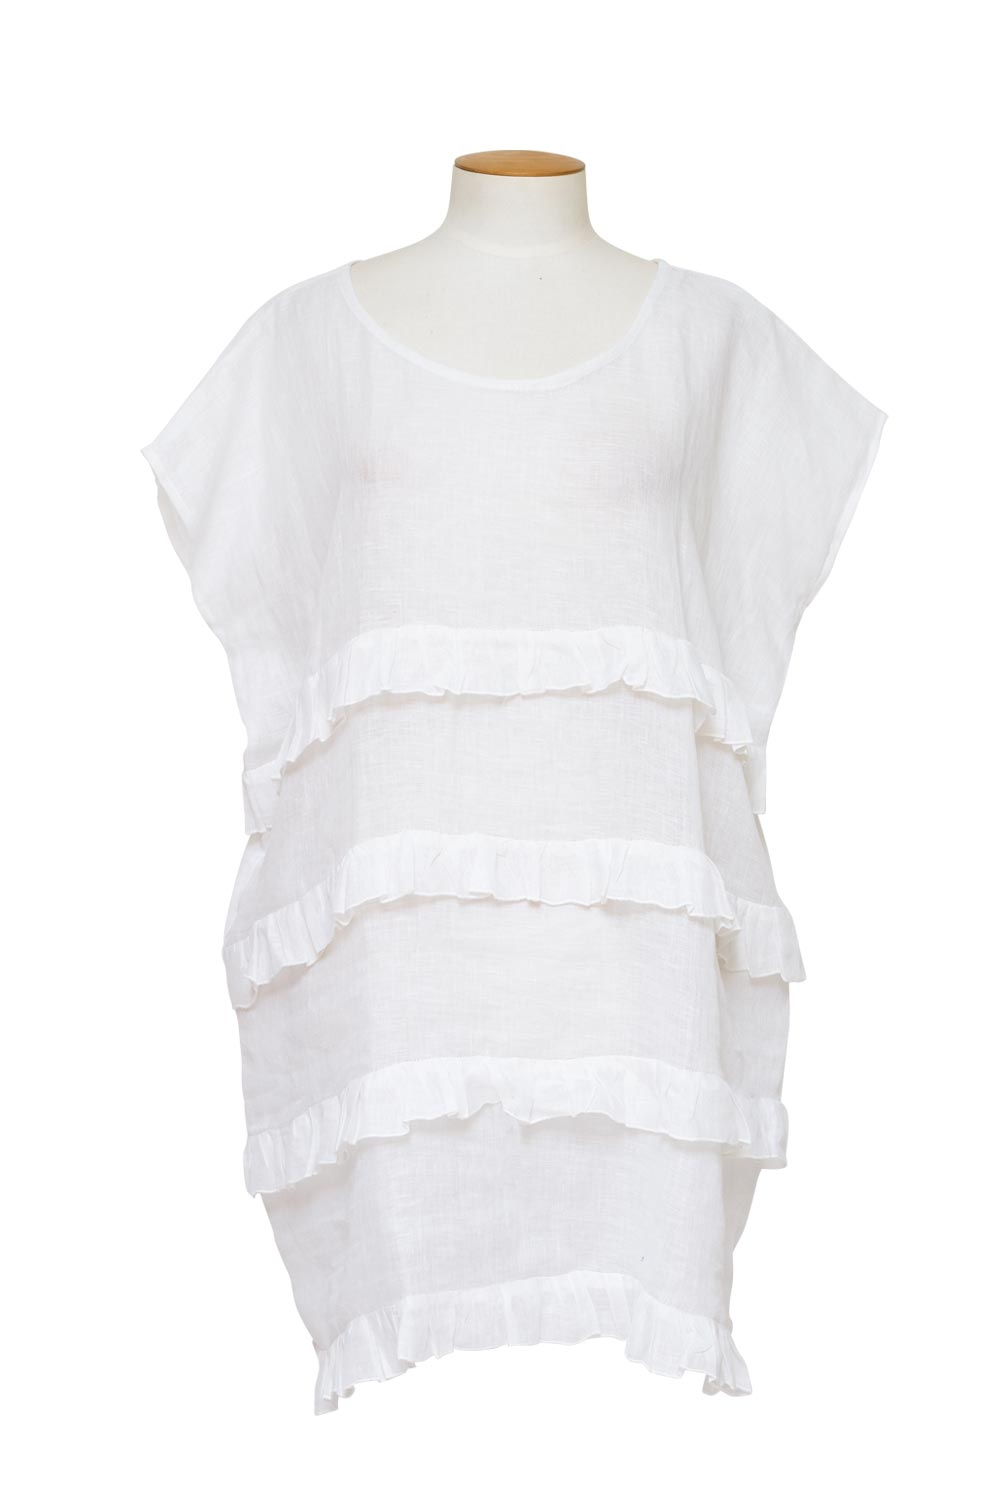 zephyr-felicity-top-white